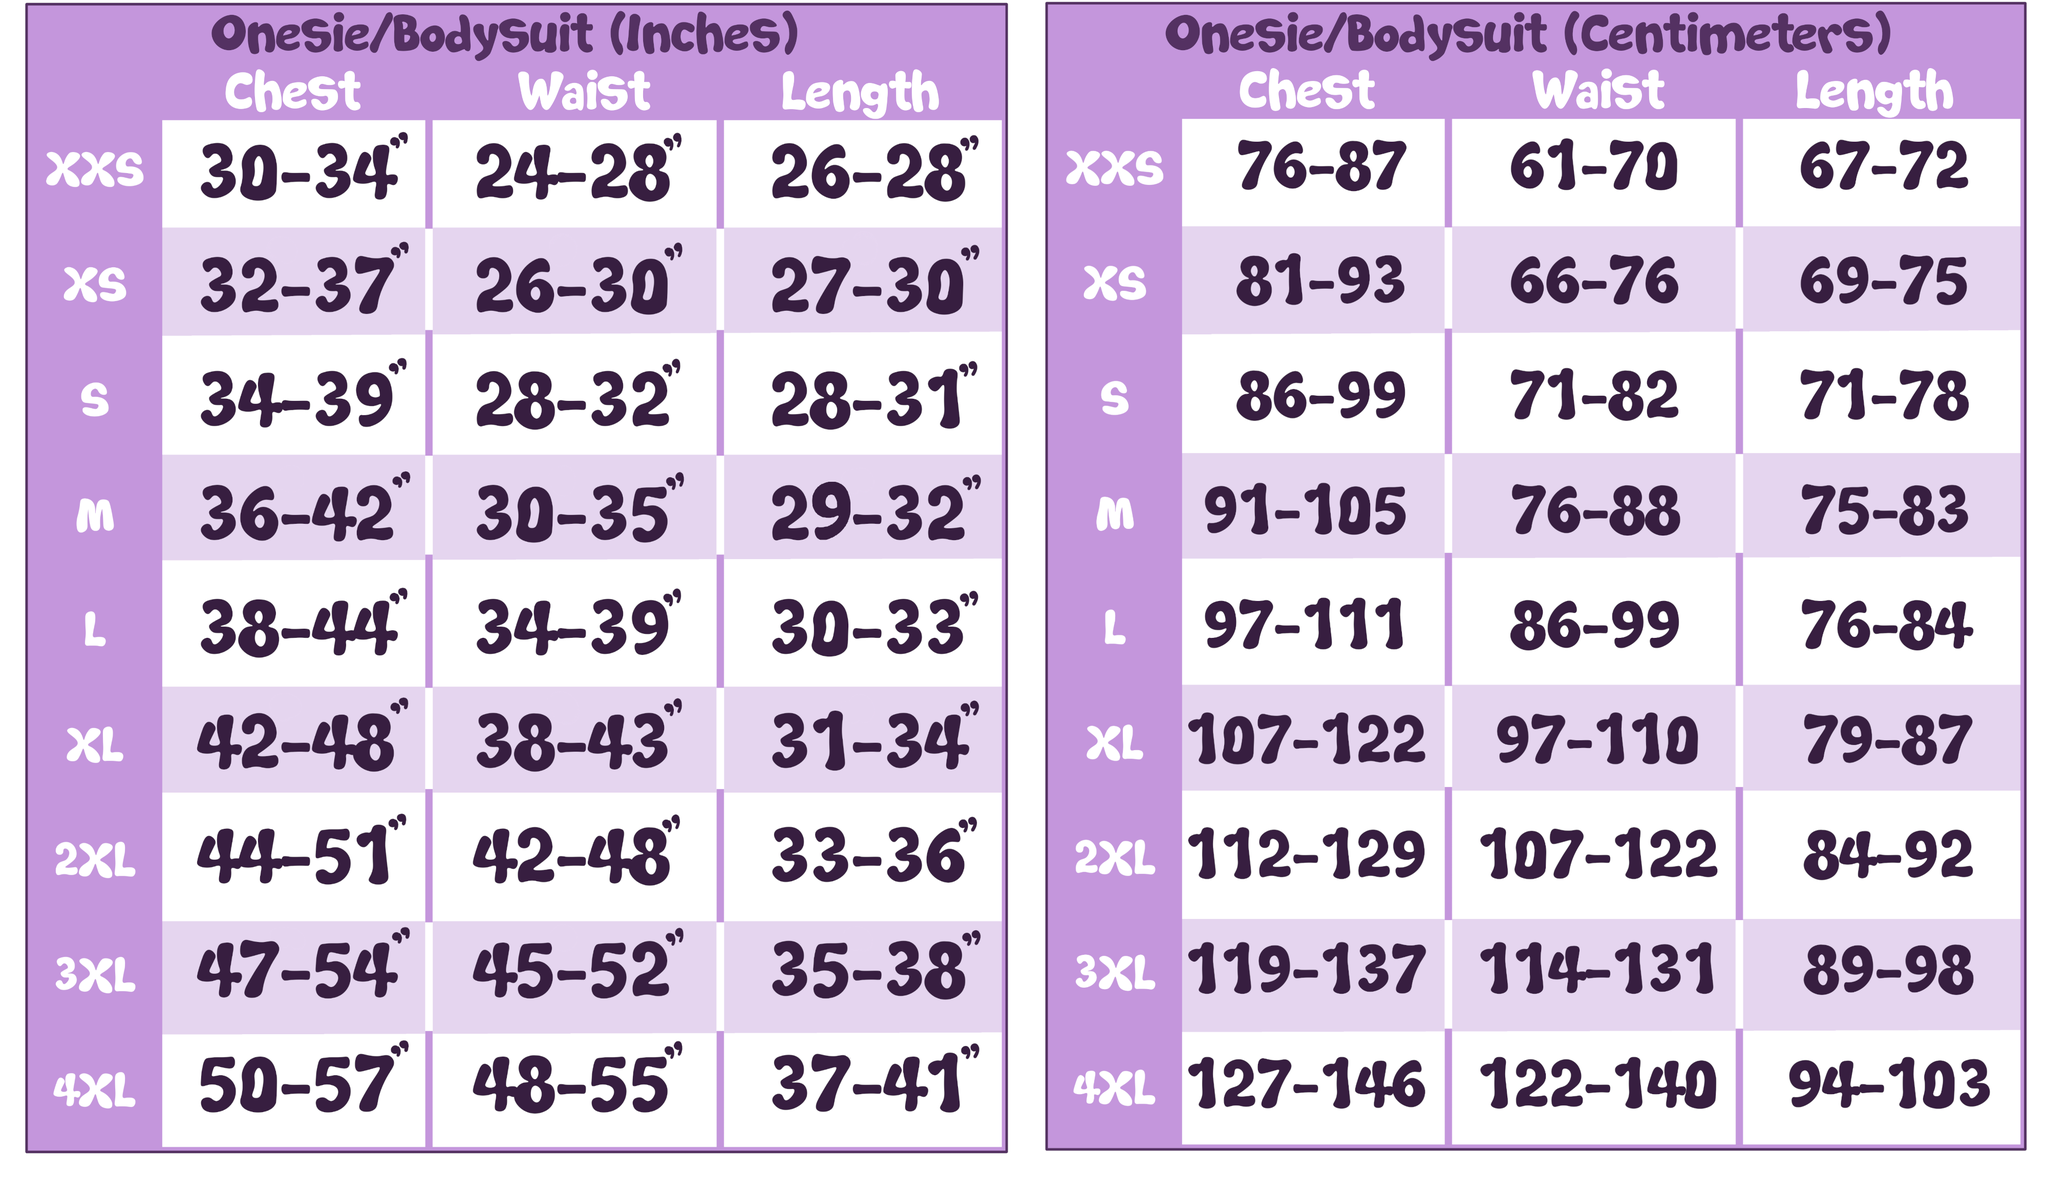 Onesie aka Bodysuit Measurement Chart